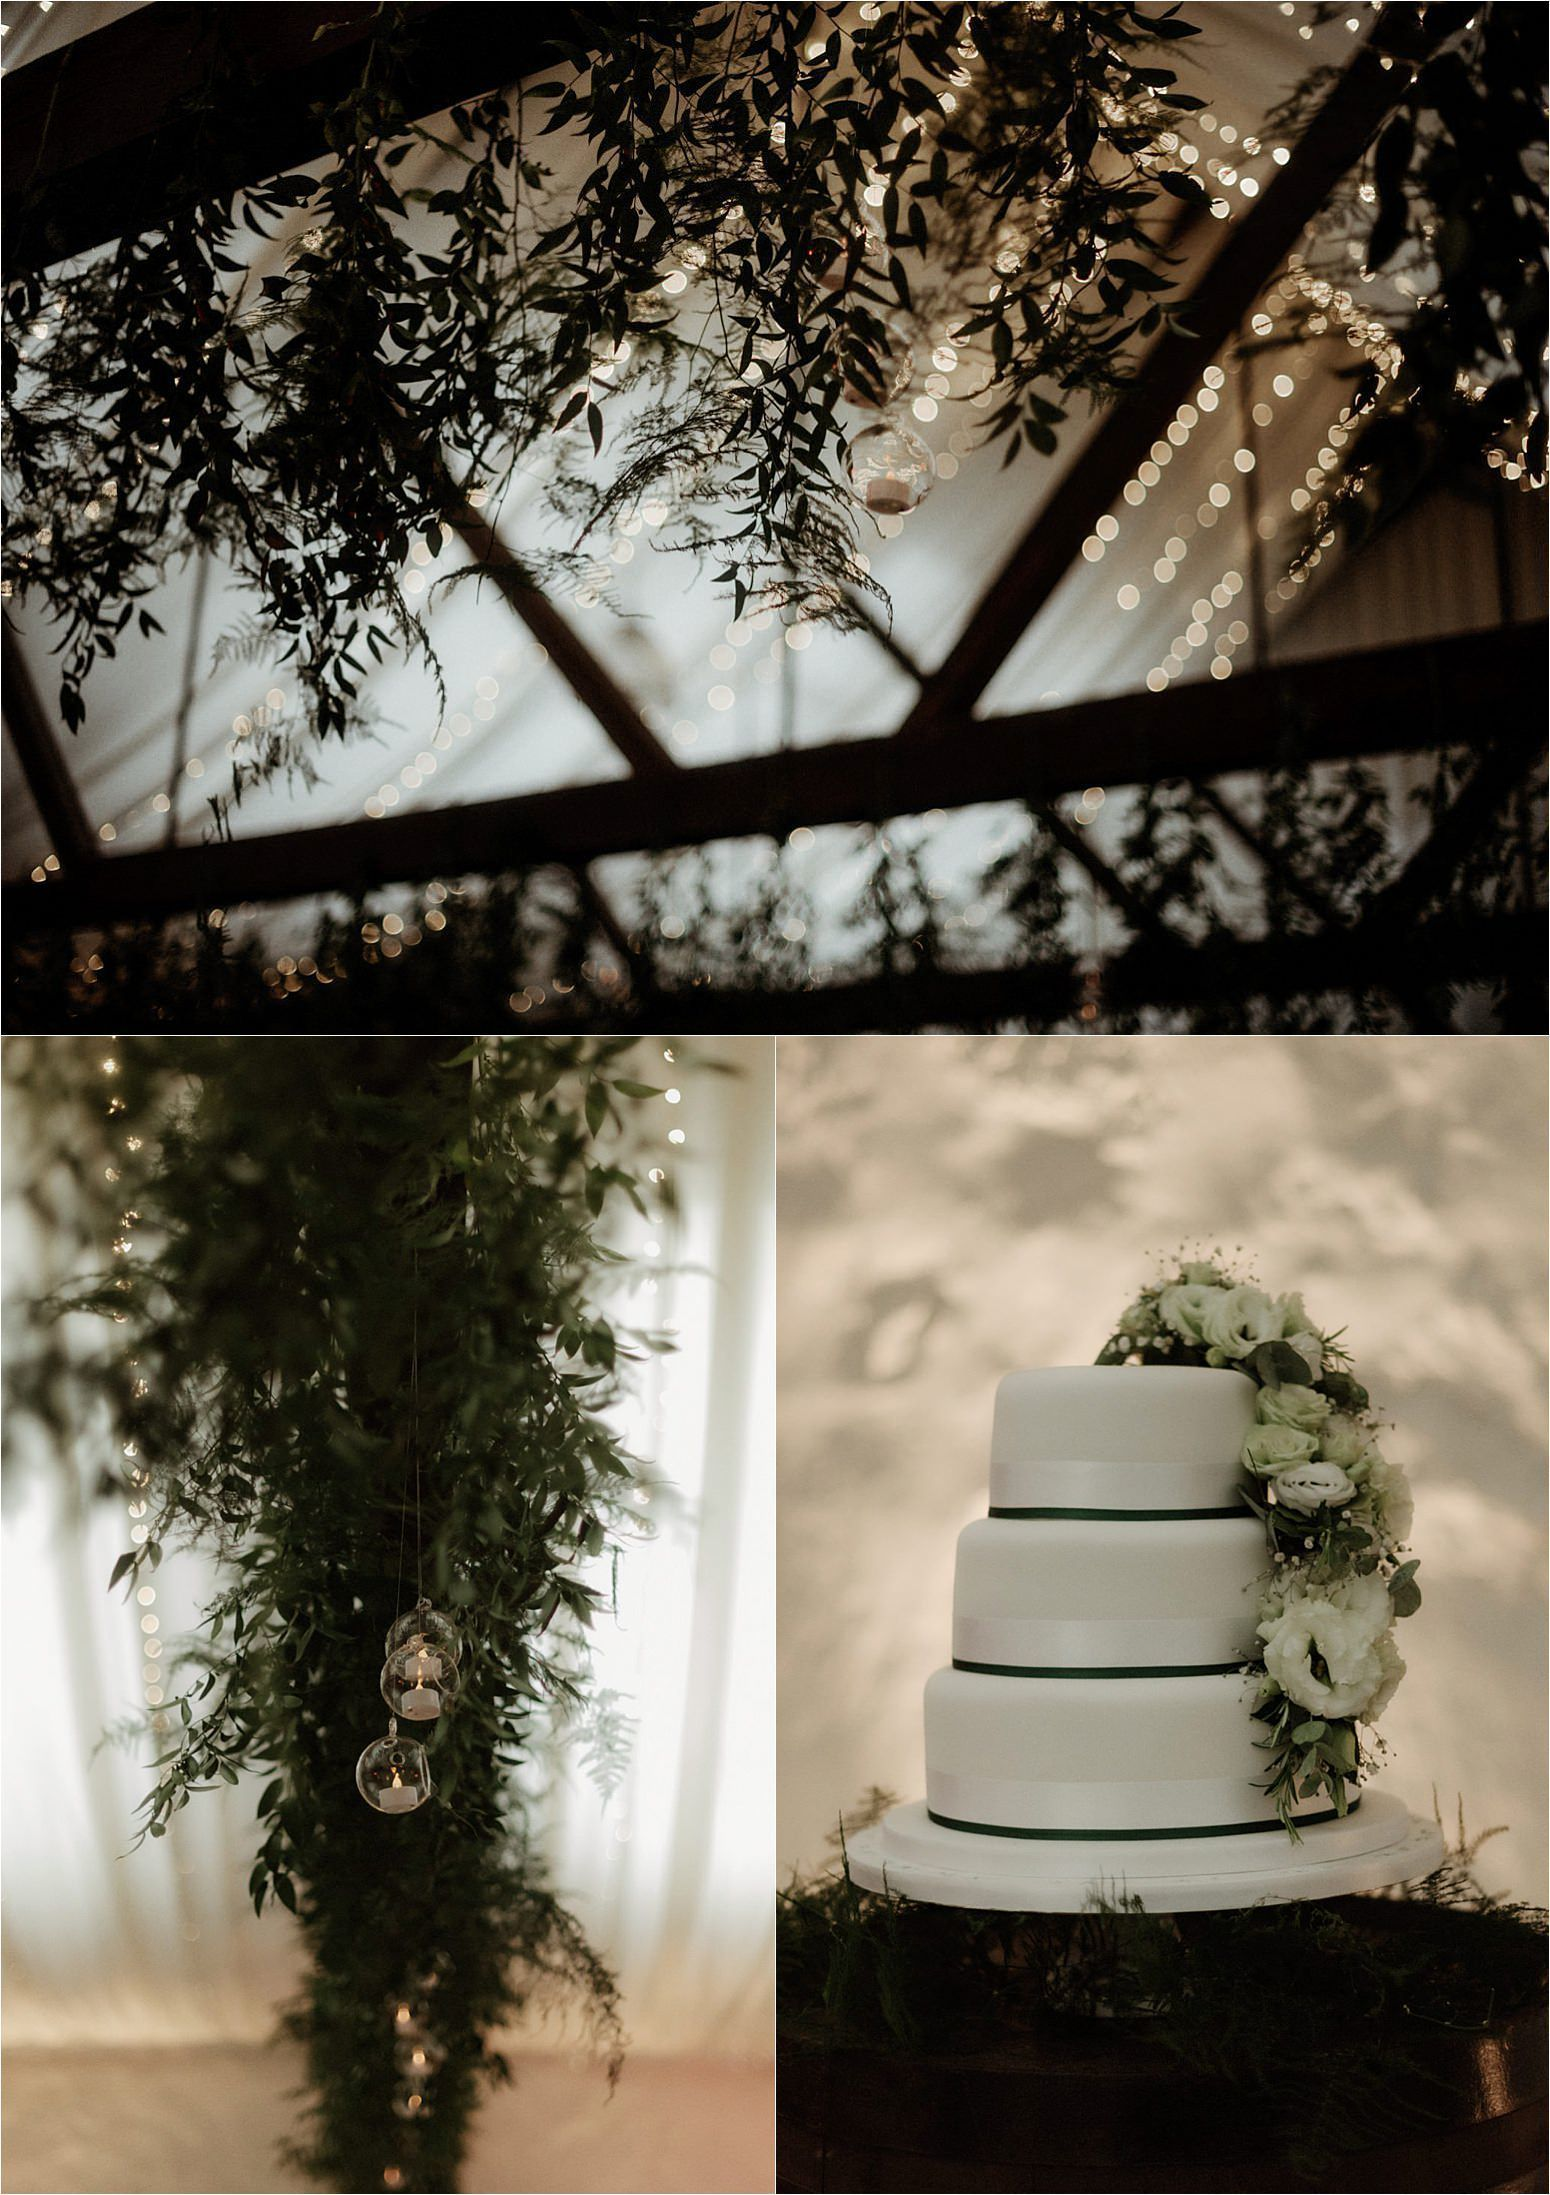 bachilton barn wedding